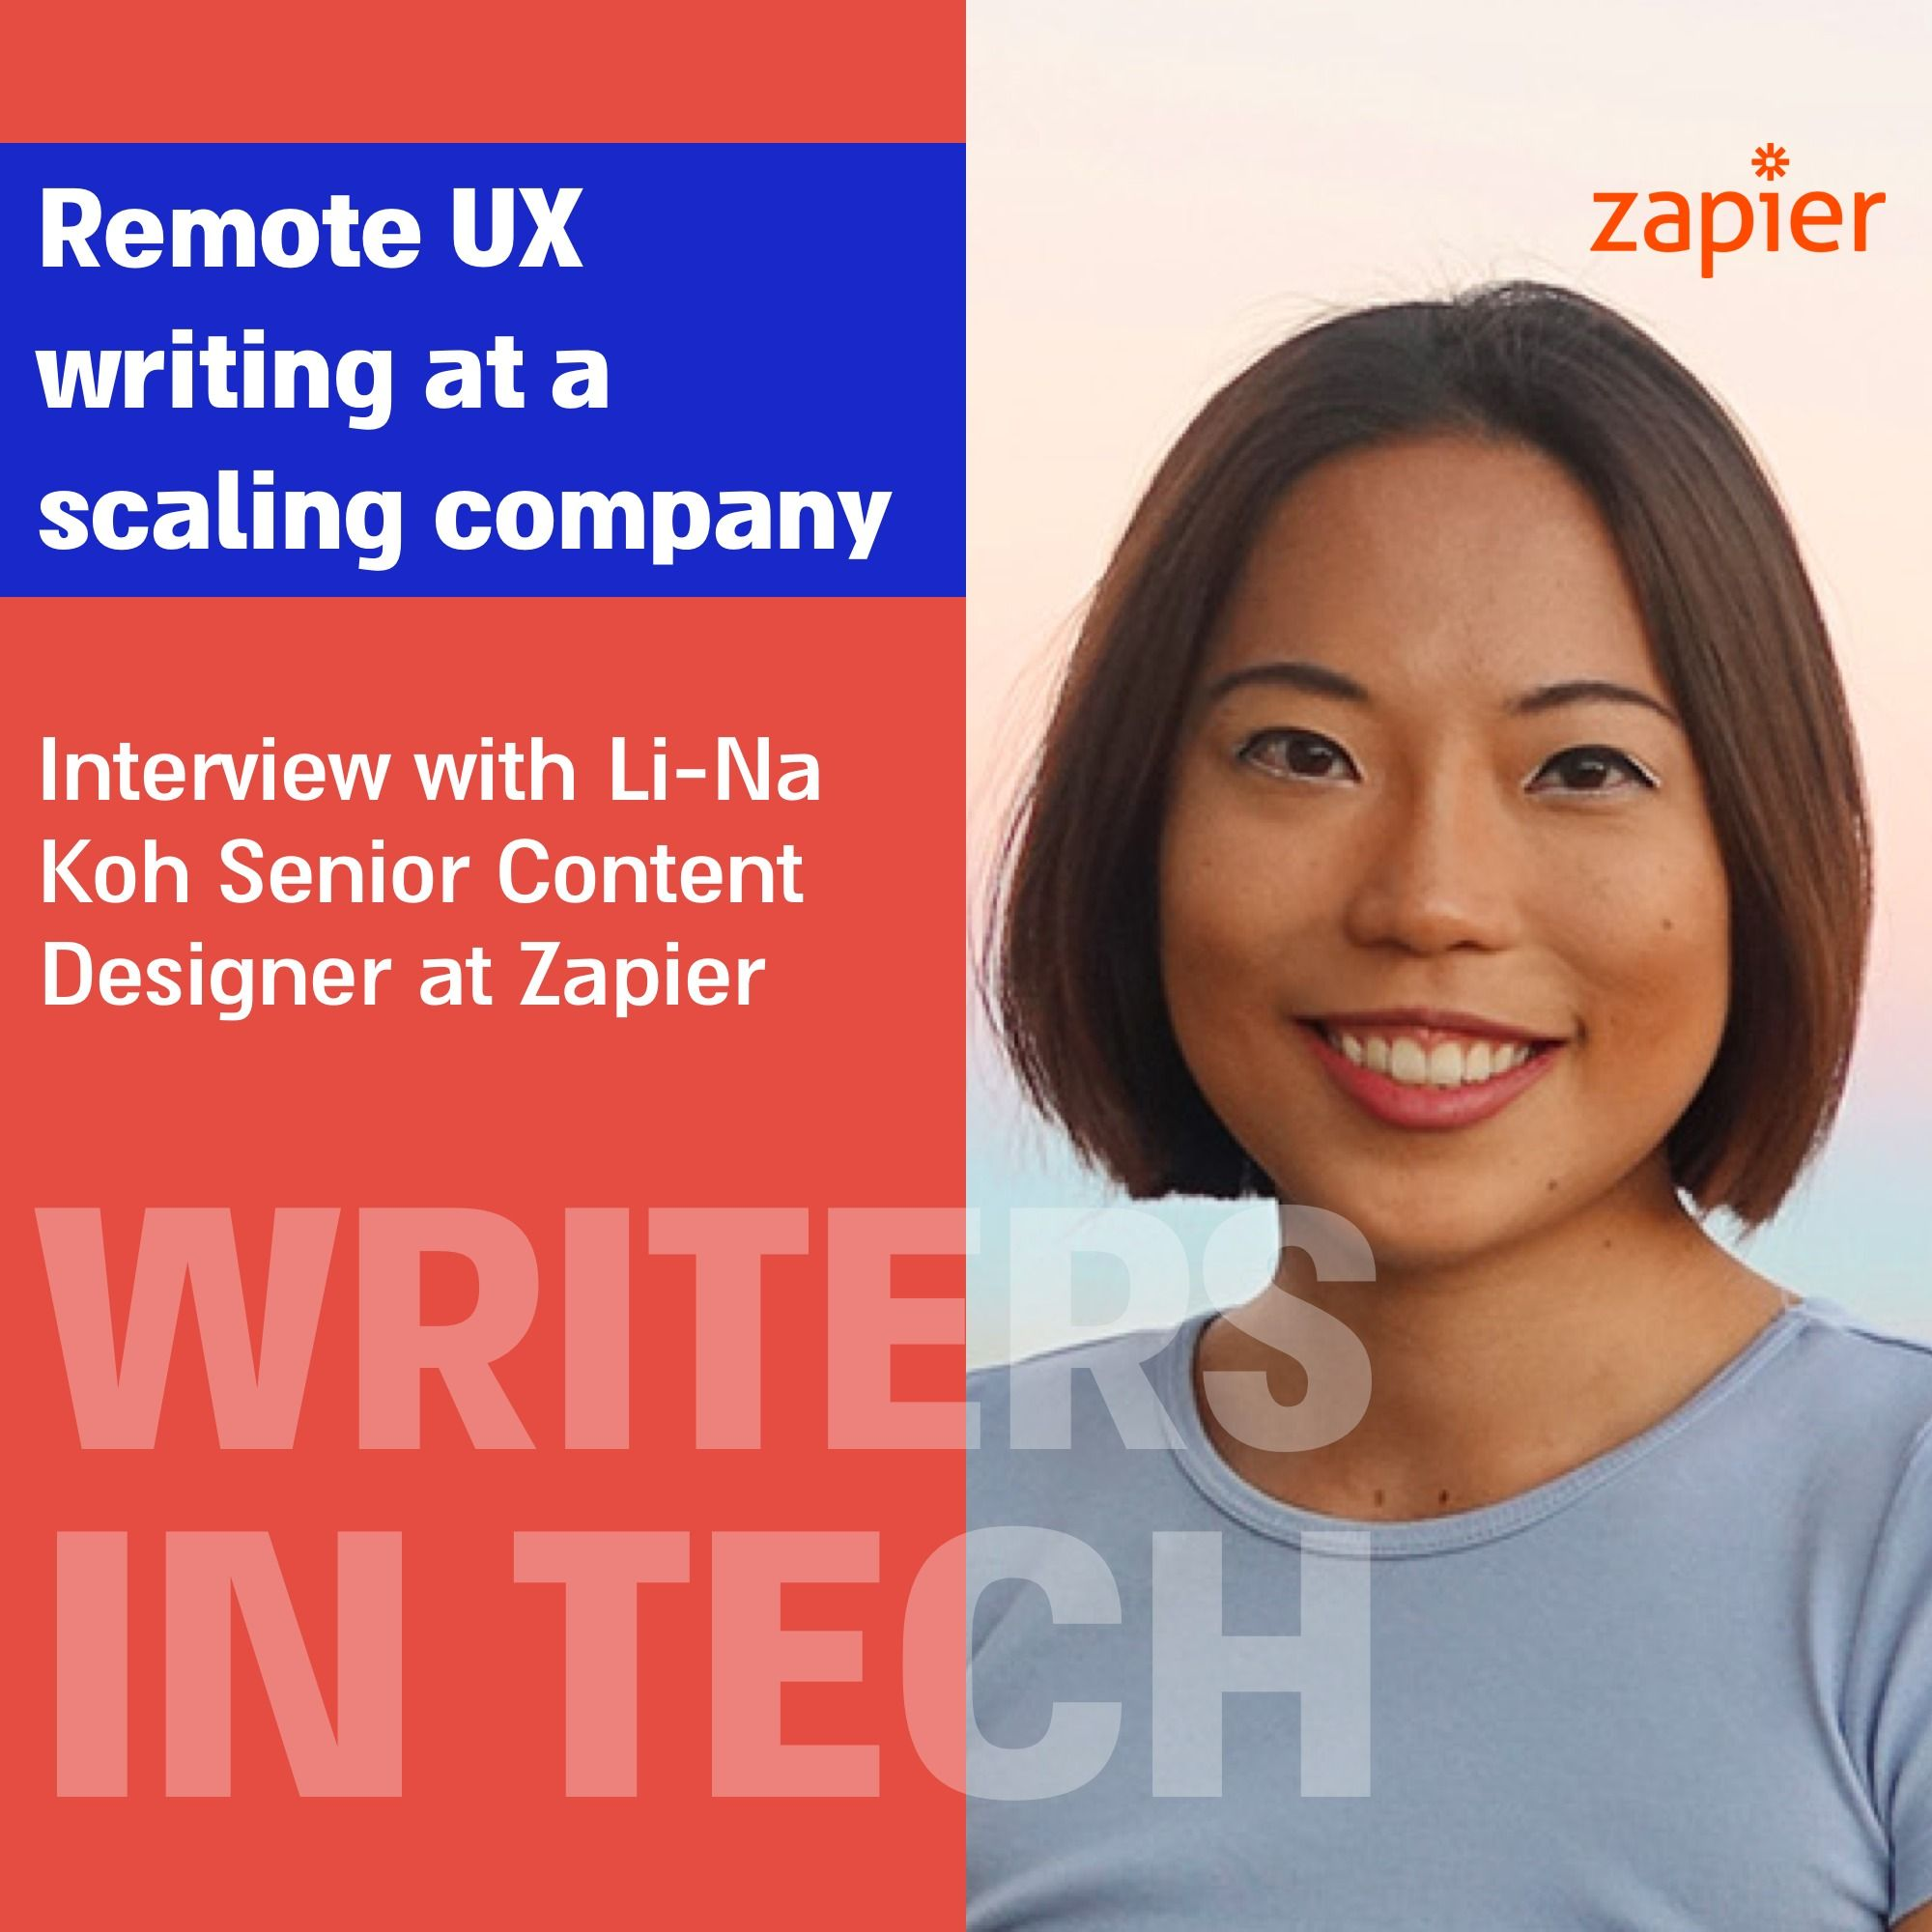 Remote UX writing at a scaling company | Interview with Li-Na Koh, Senior Content Designer at Zapier